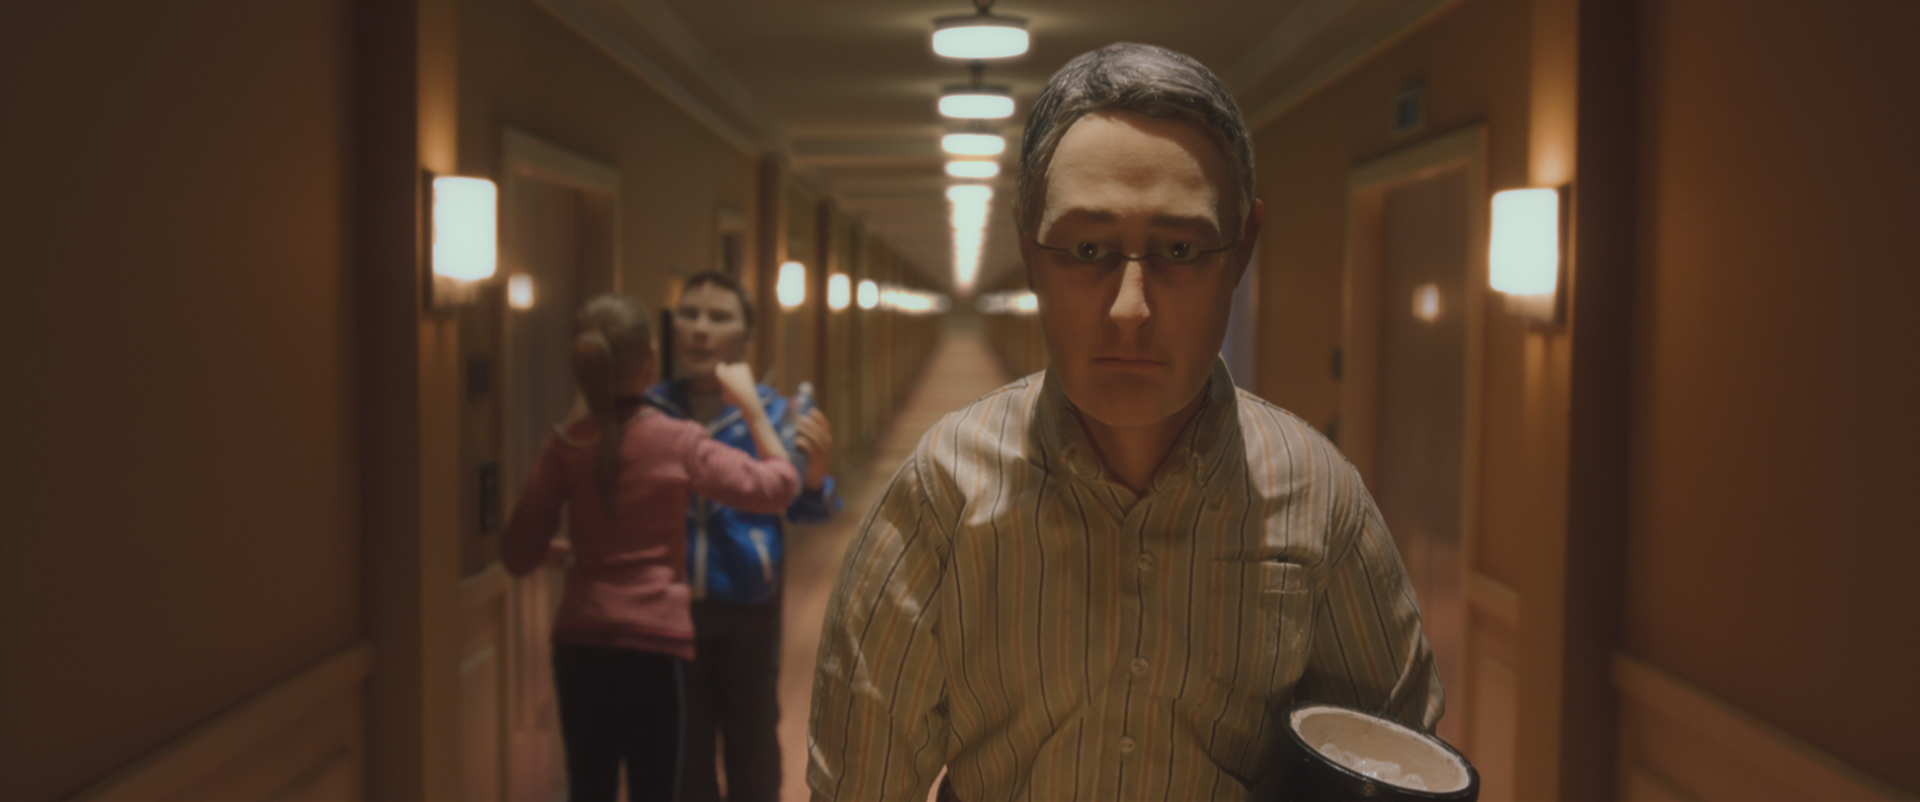 (L-R) Tom Noonan voices Hotel Guests, Wife & Husband and David Thewlis voices Michael Stone in the animated stop-motion film, ANOMALISA, by Paramount Pictures